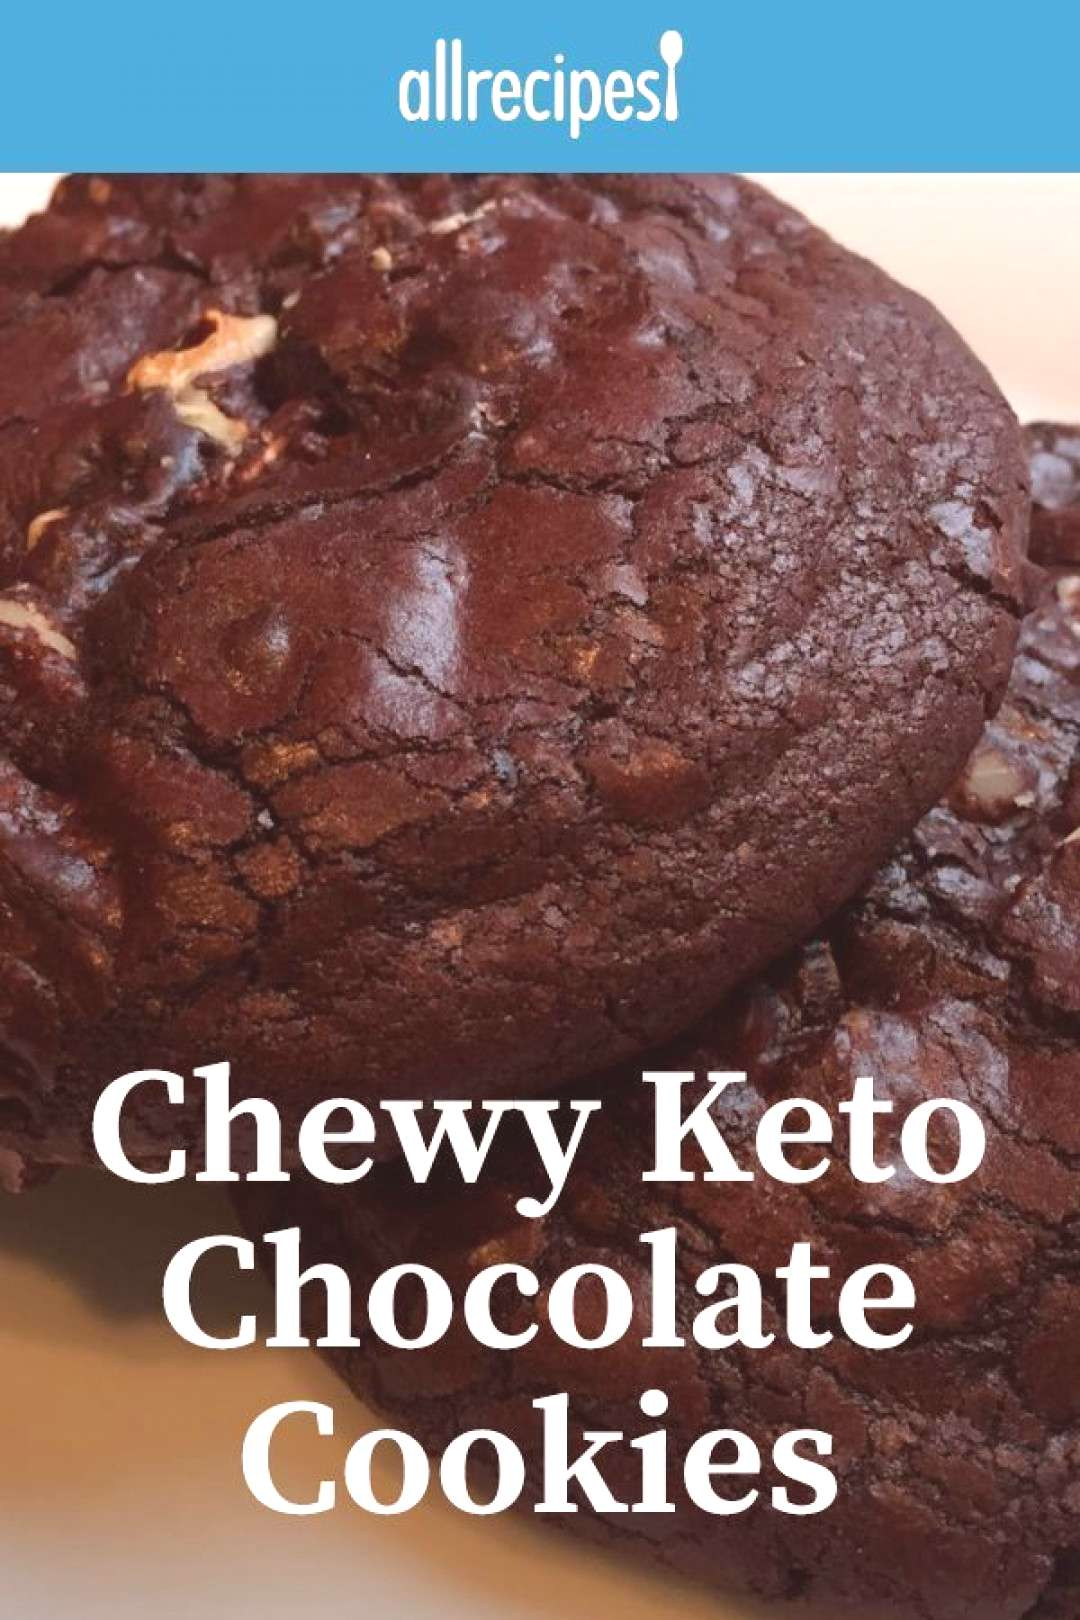 Chewy Keto Chocolate Cookies |